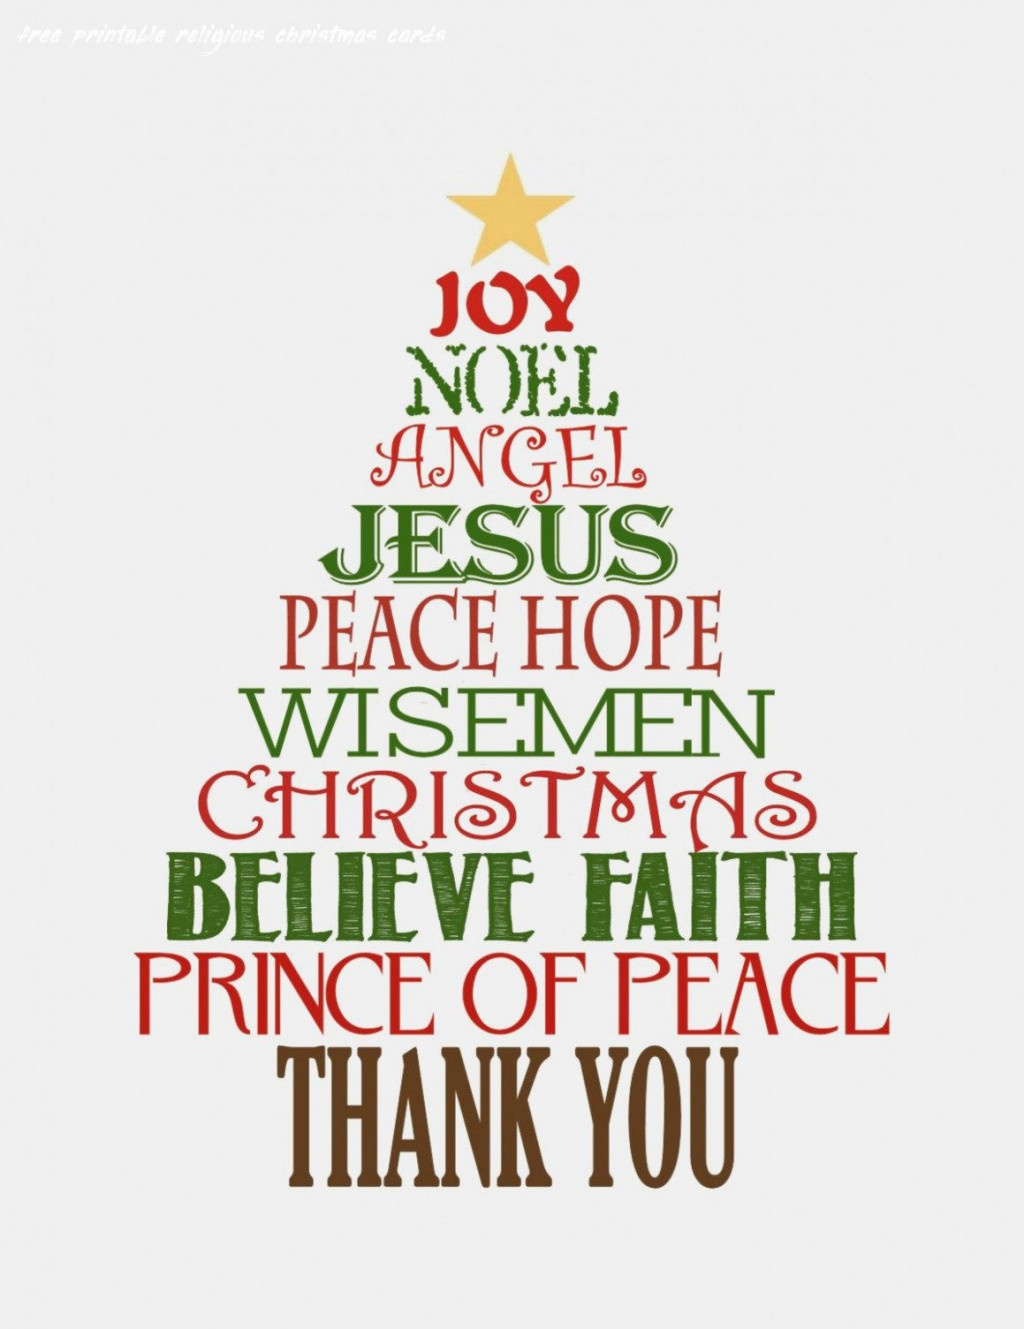 007 Unforgettable Free Printable Religiou Christma Card Template High Def  TemplatesLarge